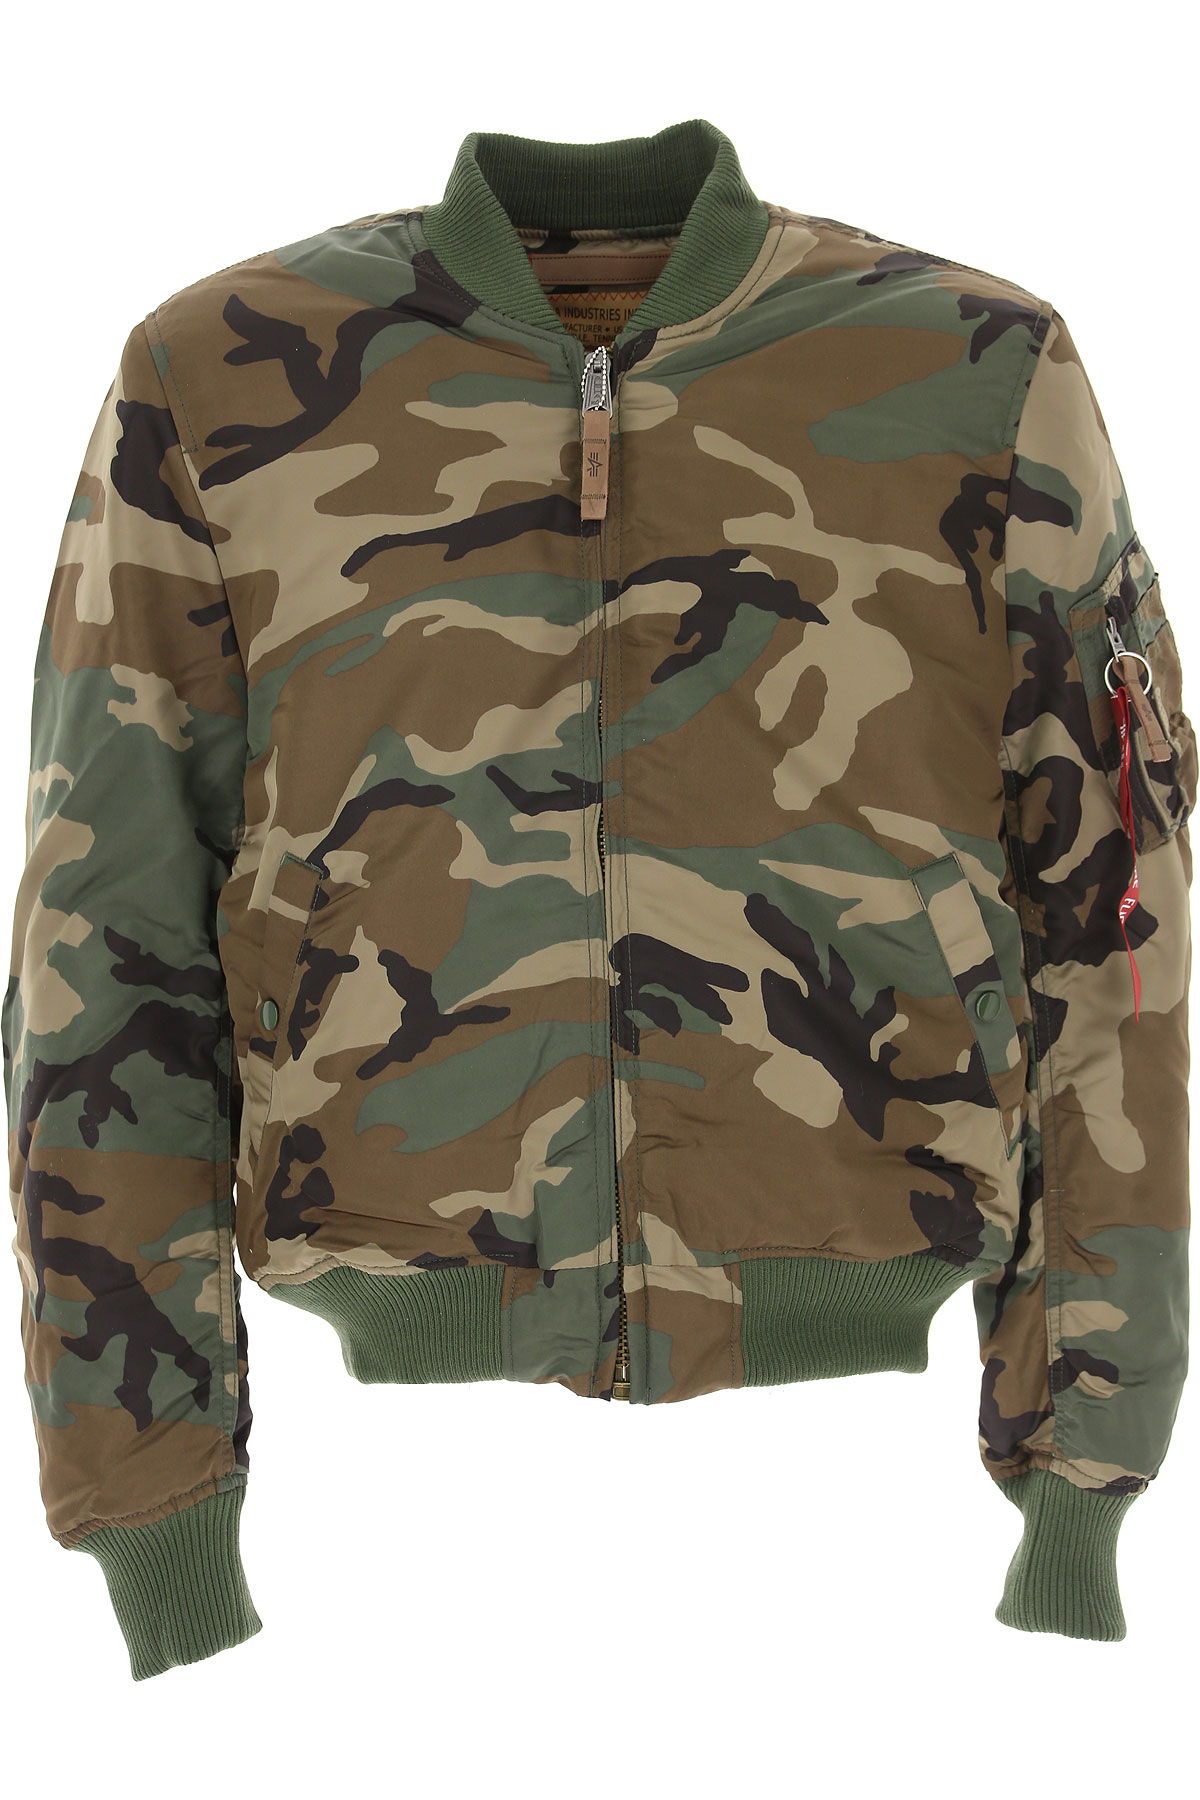 Image of Alpha Industries Jacket for Men, camouflage, polyester, 2017, L M S XL